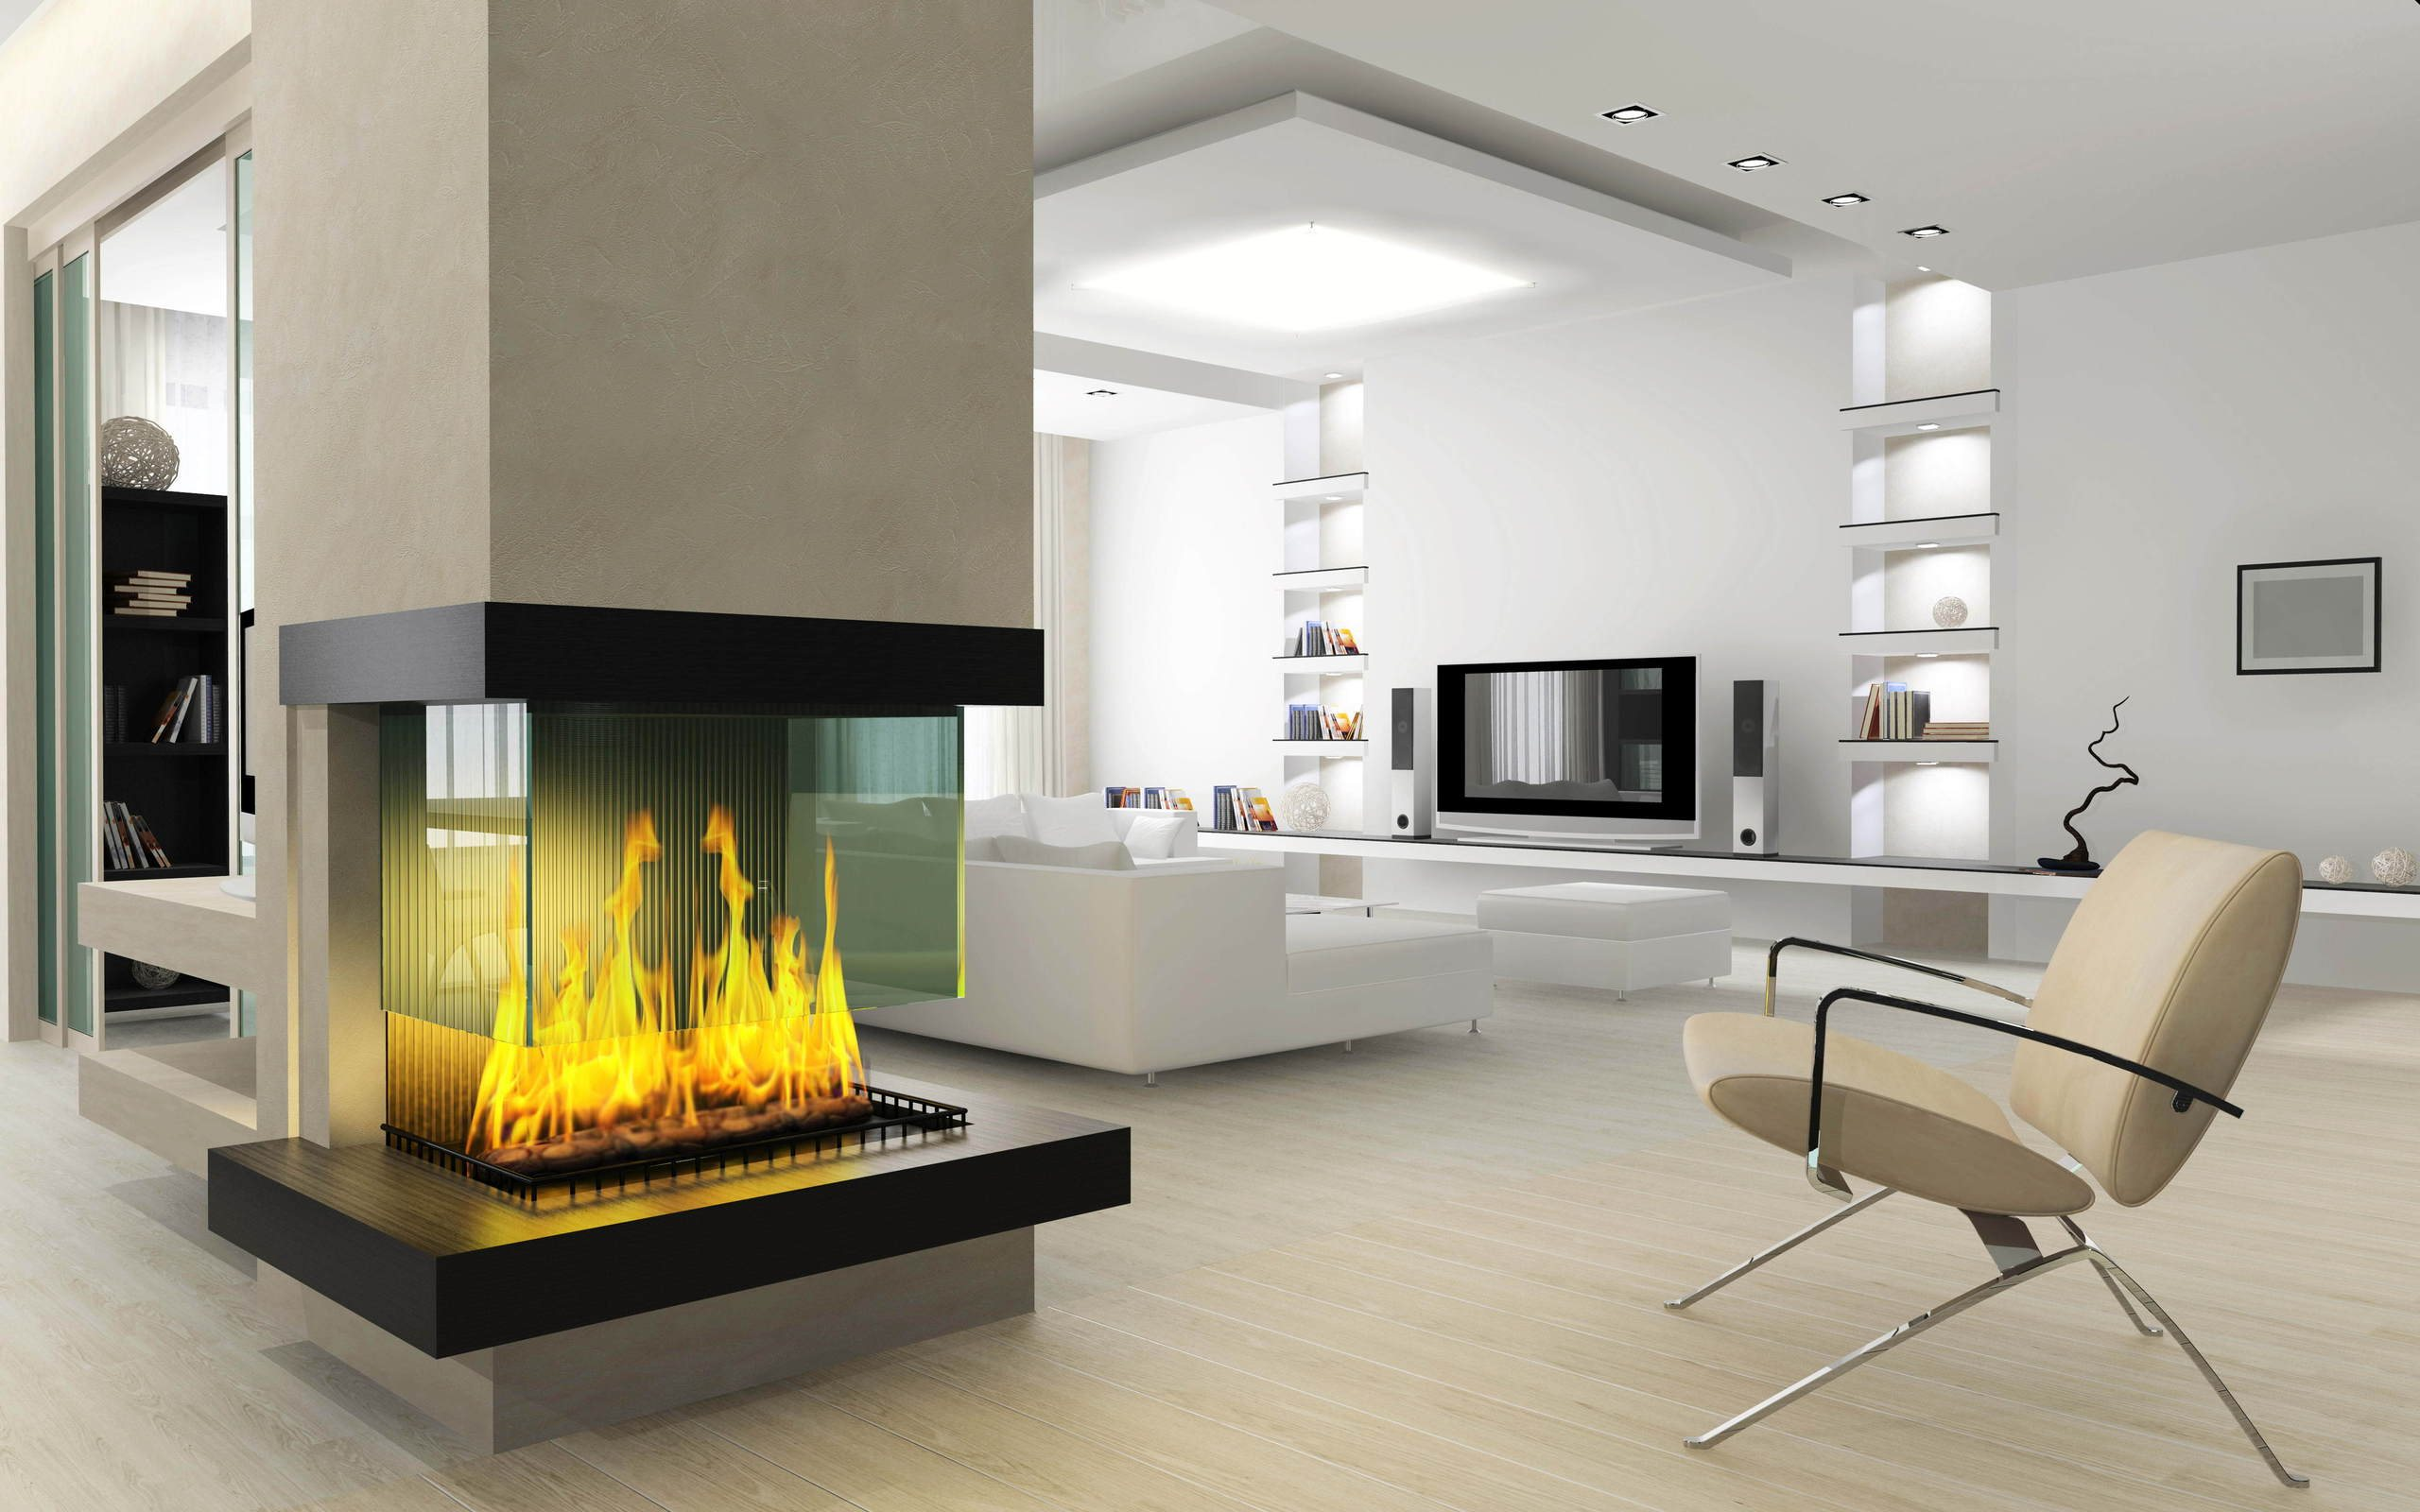 Add Stylish Fireplace in Modern Interior Design near Living Room with White Sofas and Ottoman